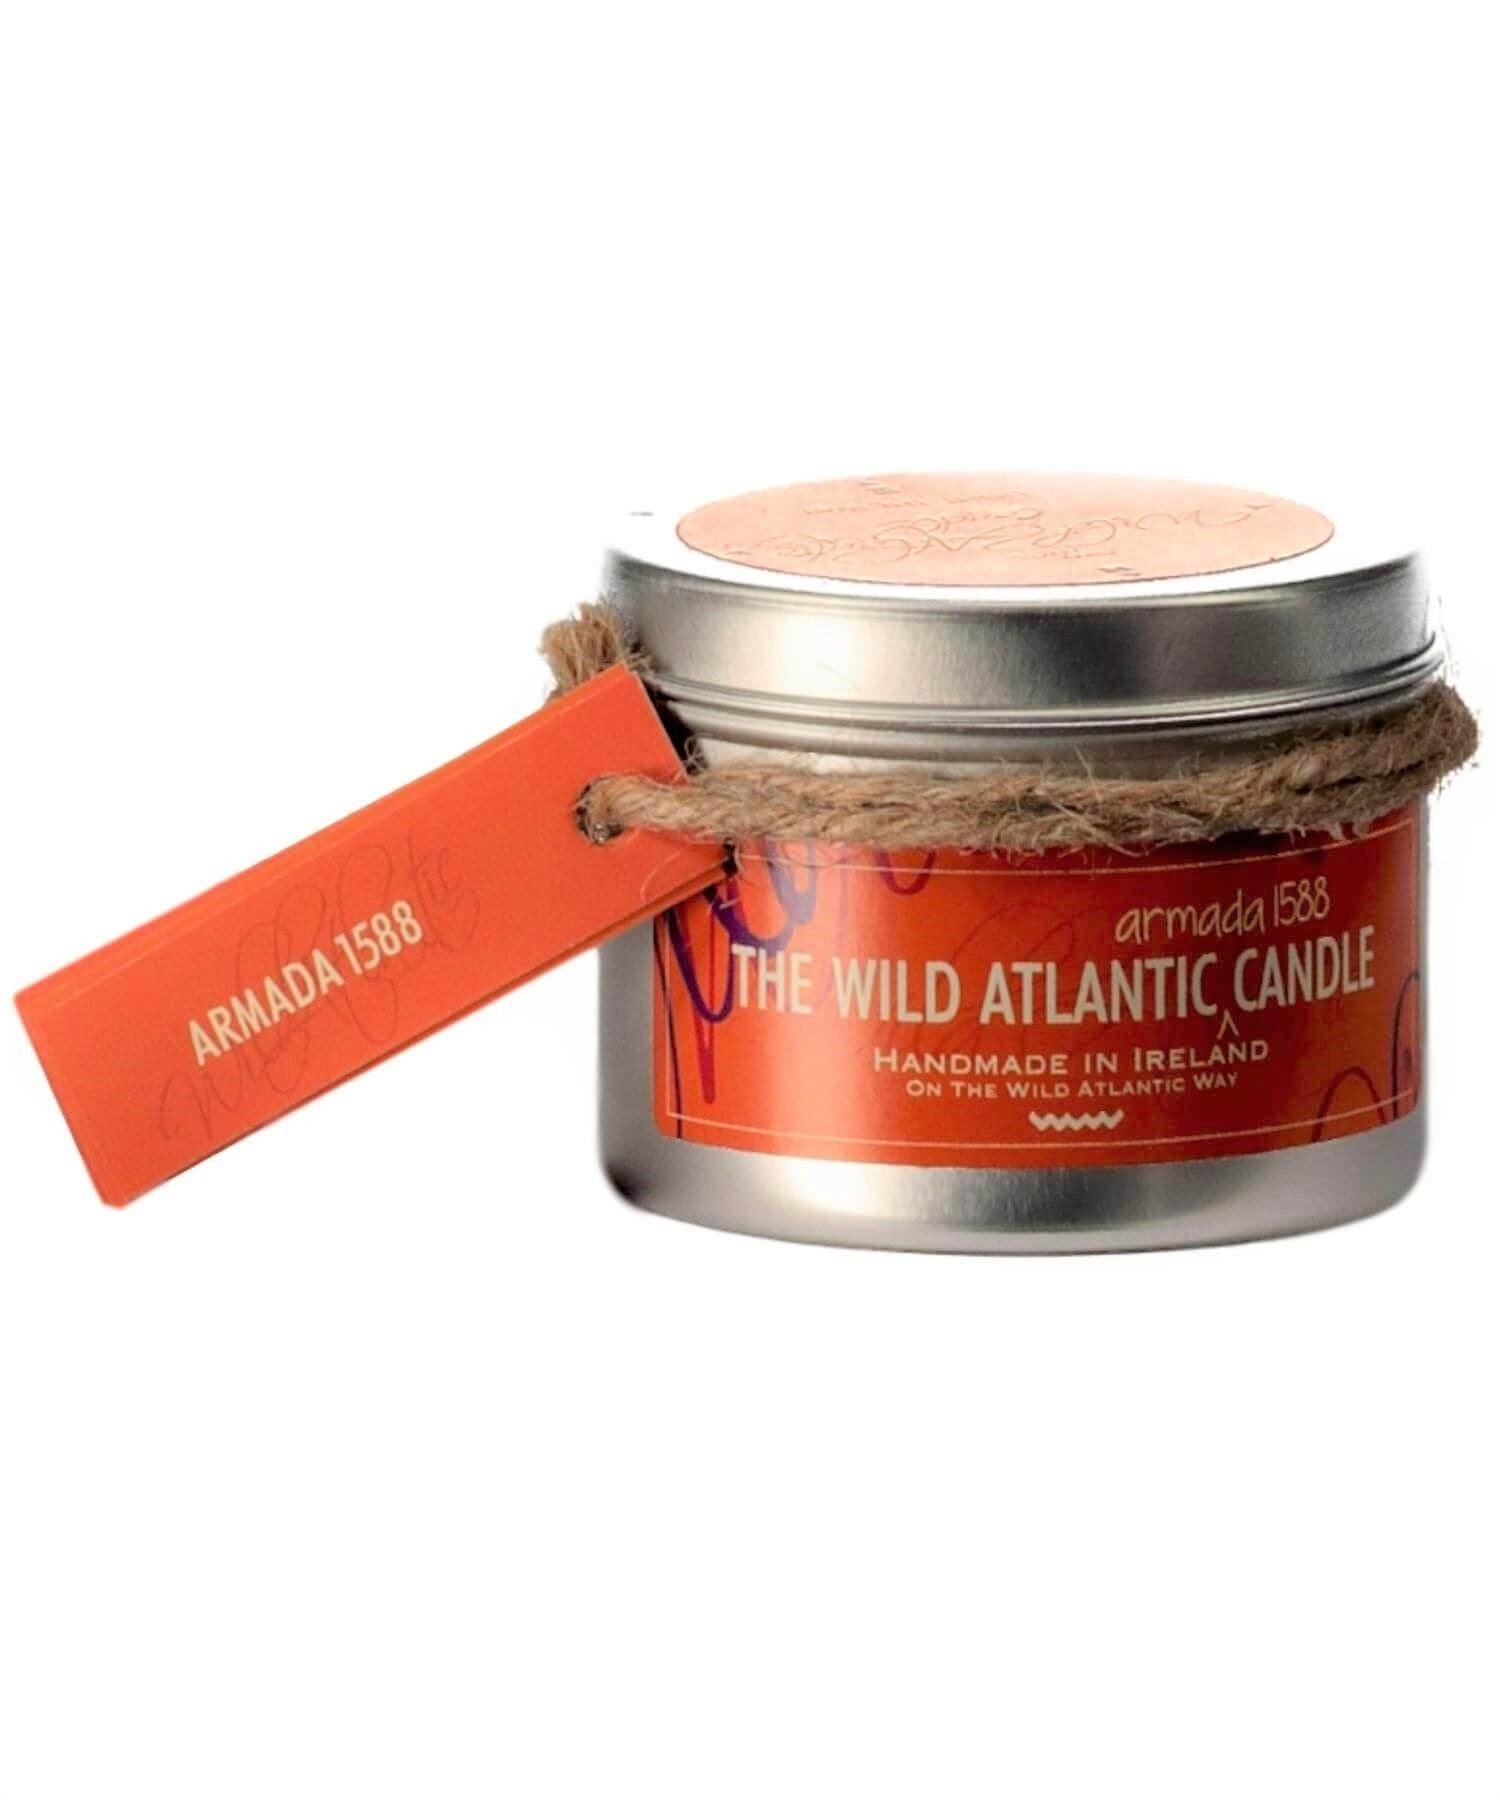 Armada 1588 - [Wild Atlantic Candles] - Home Fragrance - Irish Gifts